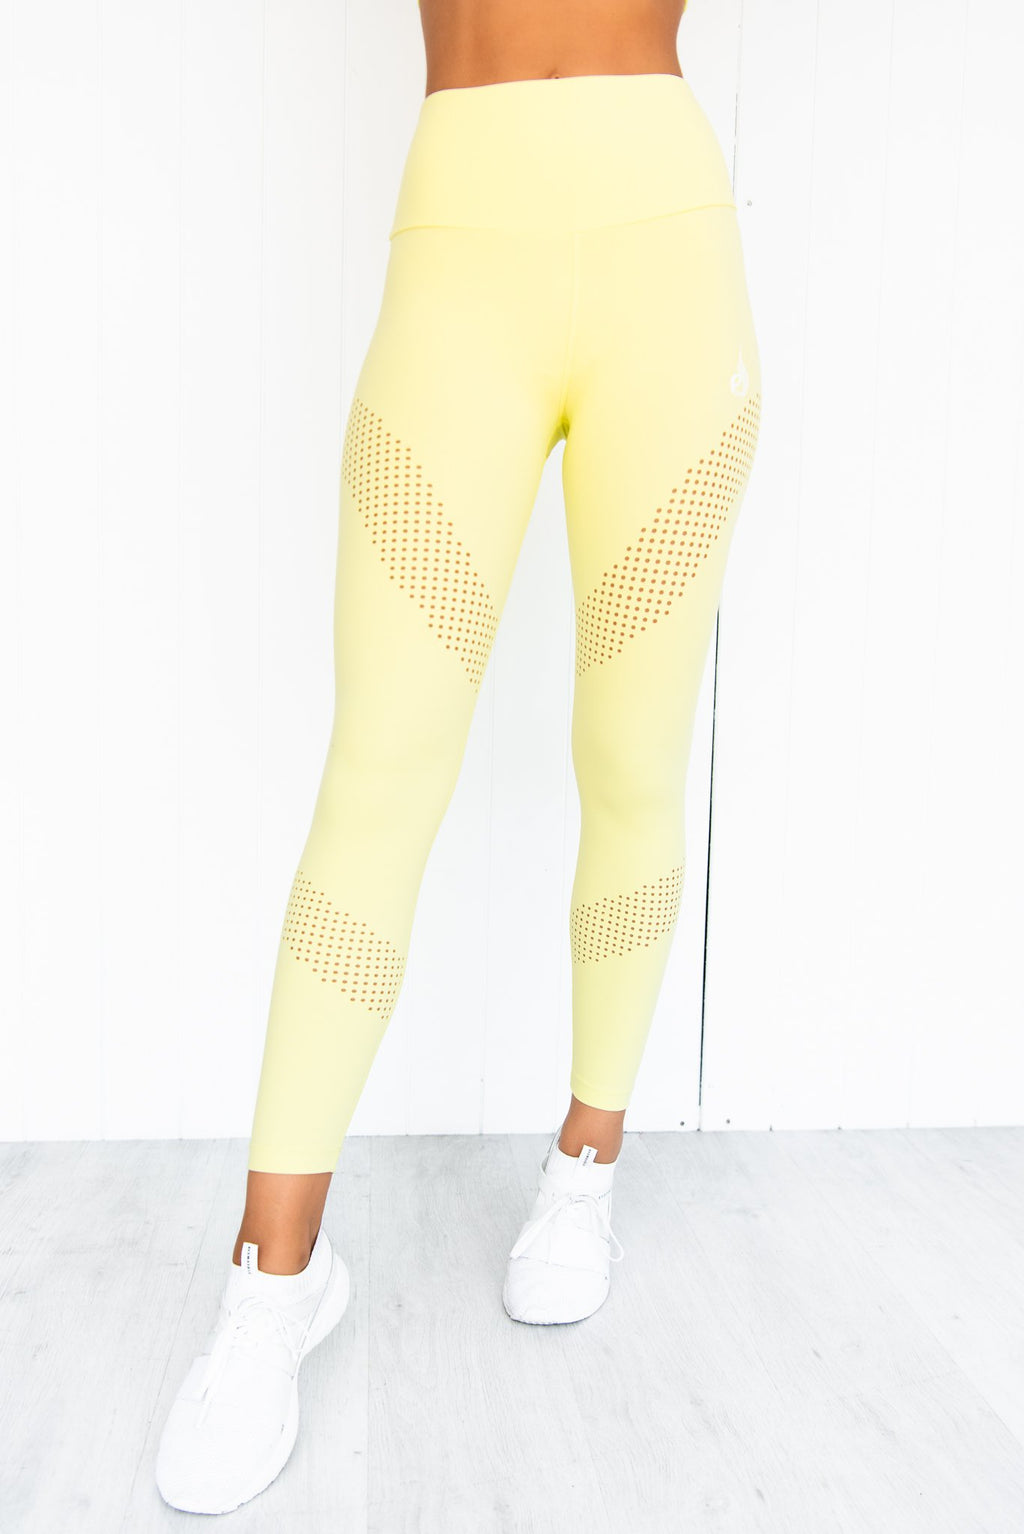 Pastels High Waisted Leggings - Lemon - PURE DASH